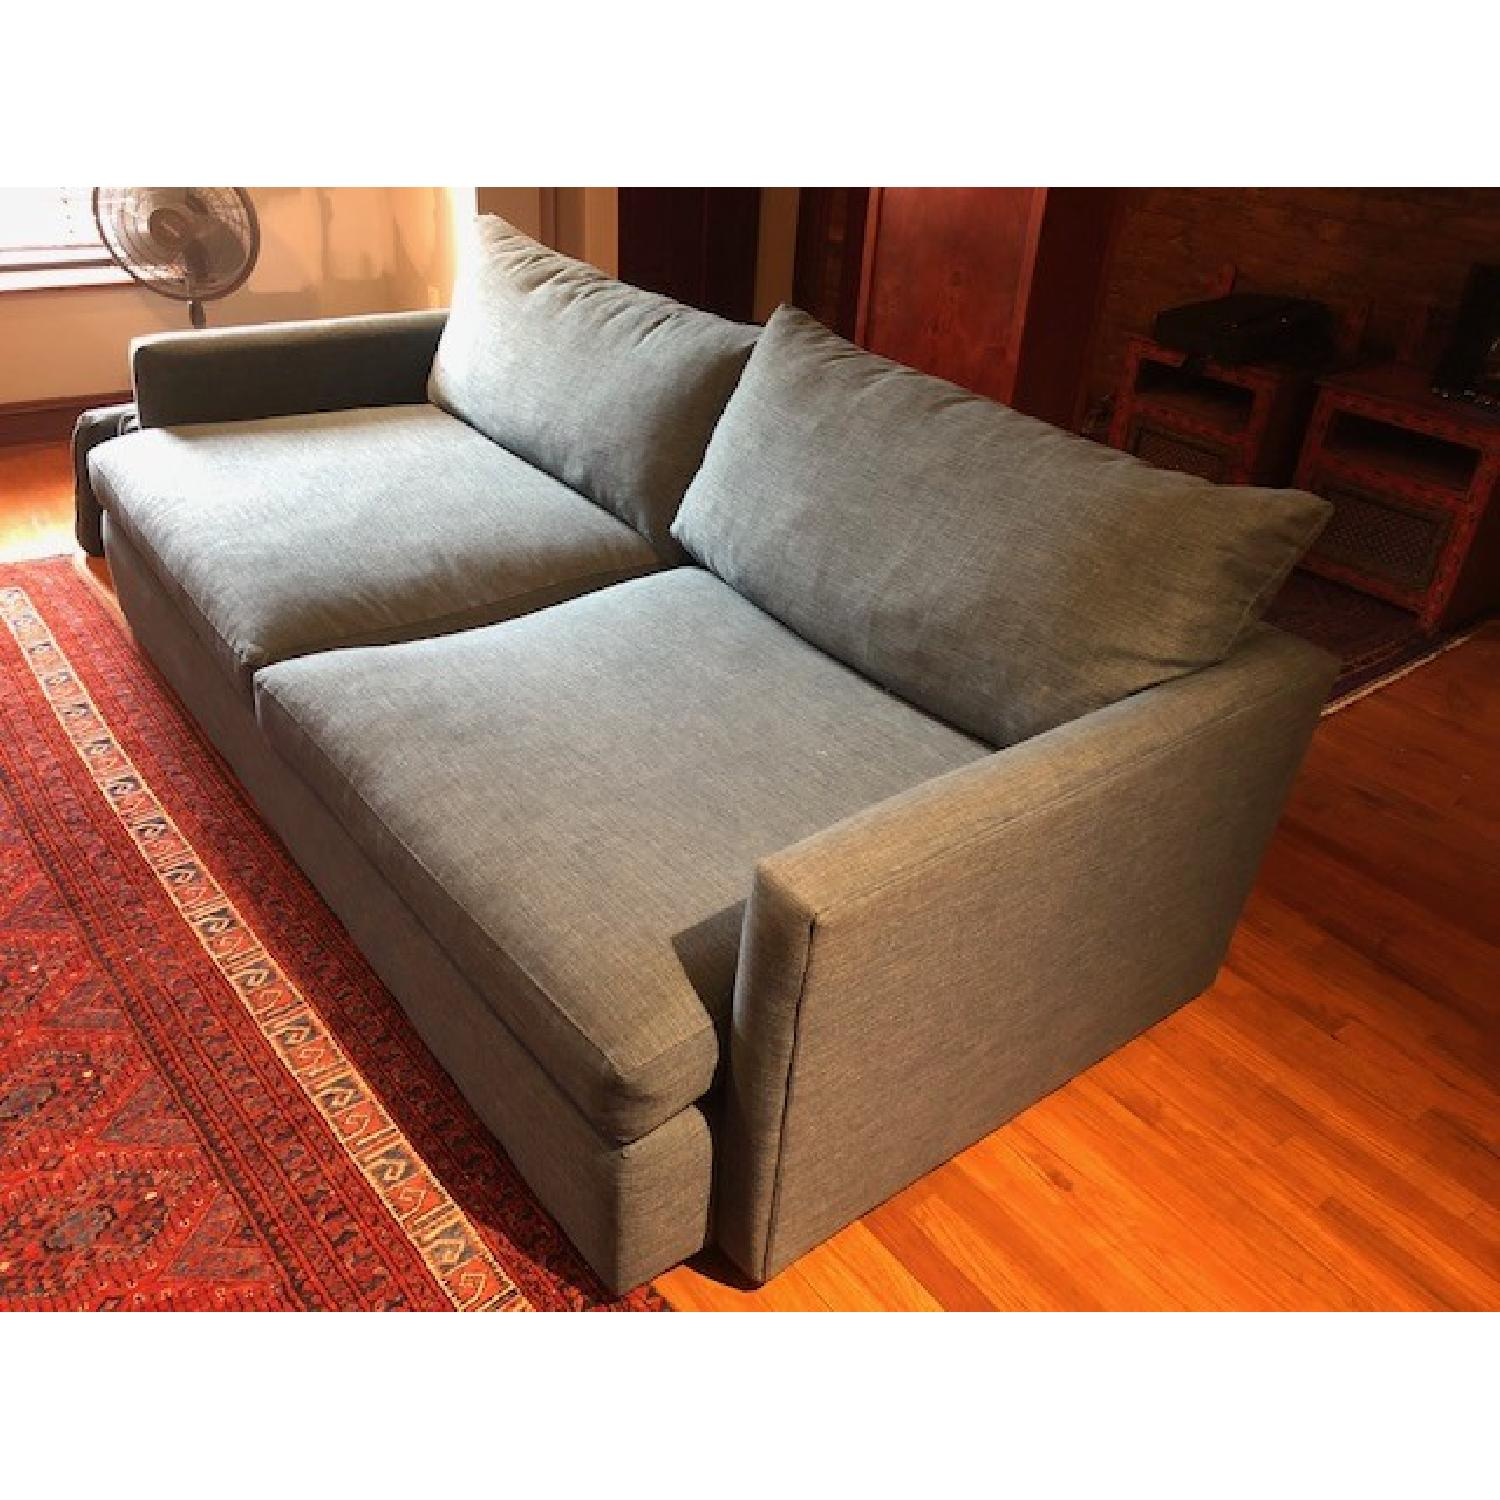 Crate & Barrel Lounge II Apartment Sofa & Ottoman-10